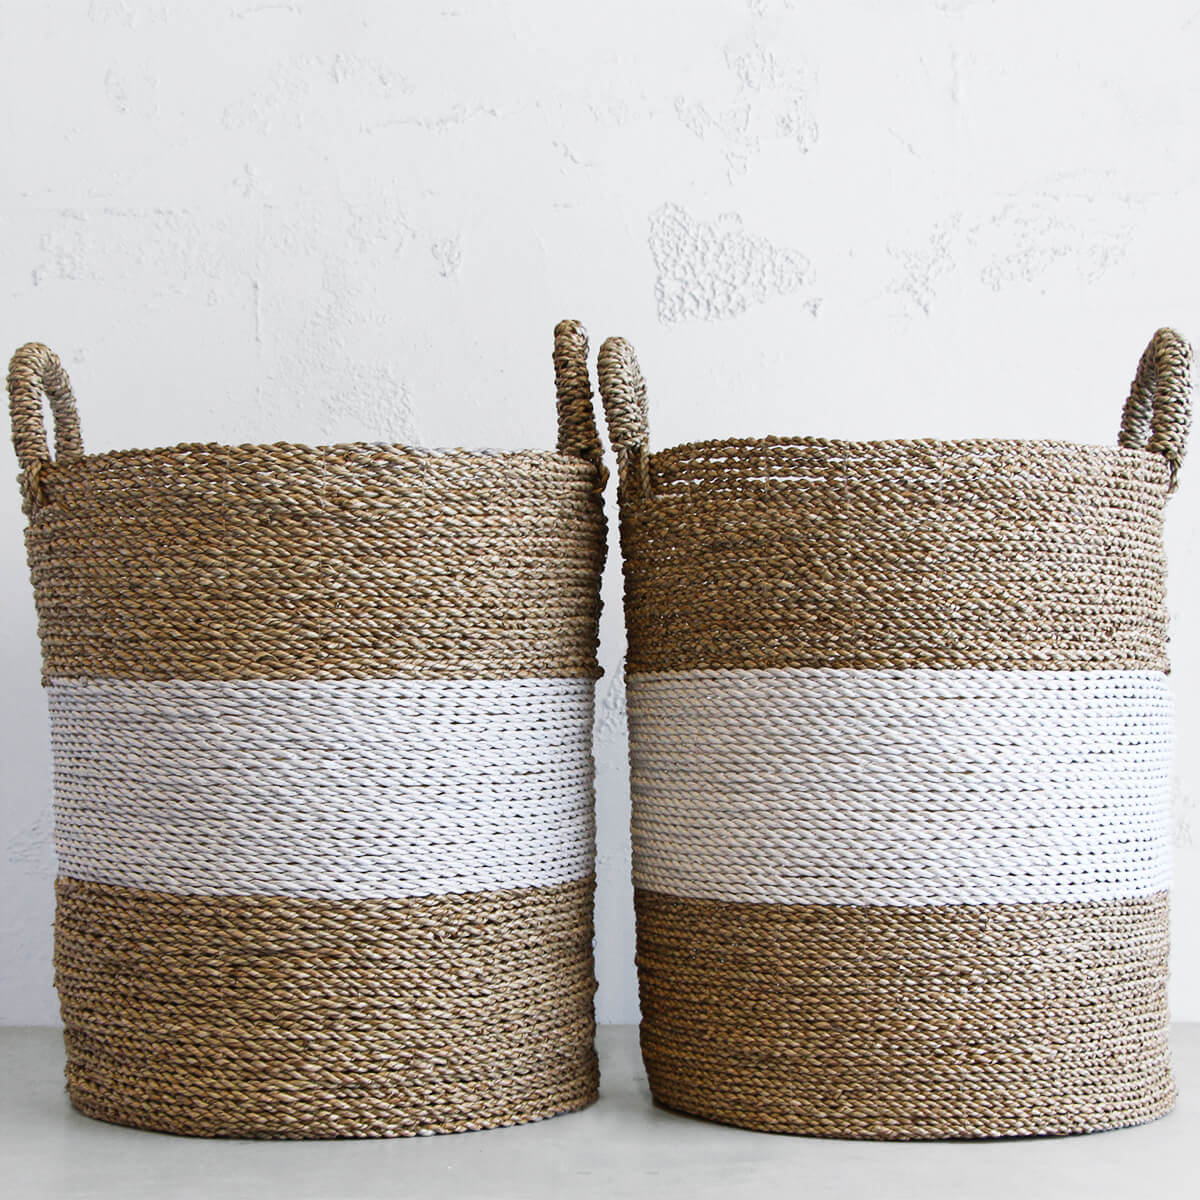 BASKET FOR HOME  |  PLANT HOLDER  |  TOY BASKET  | NATURAL SEAGRASS BASKET